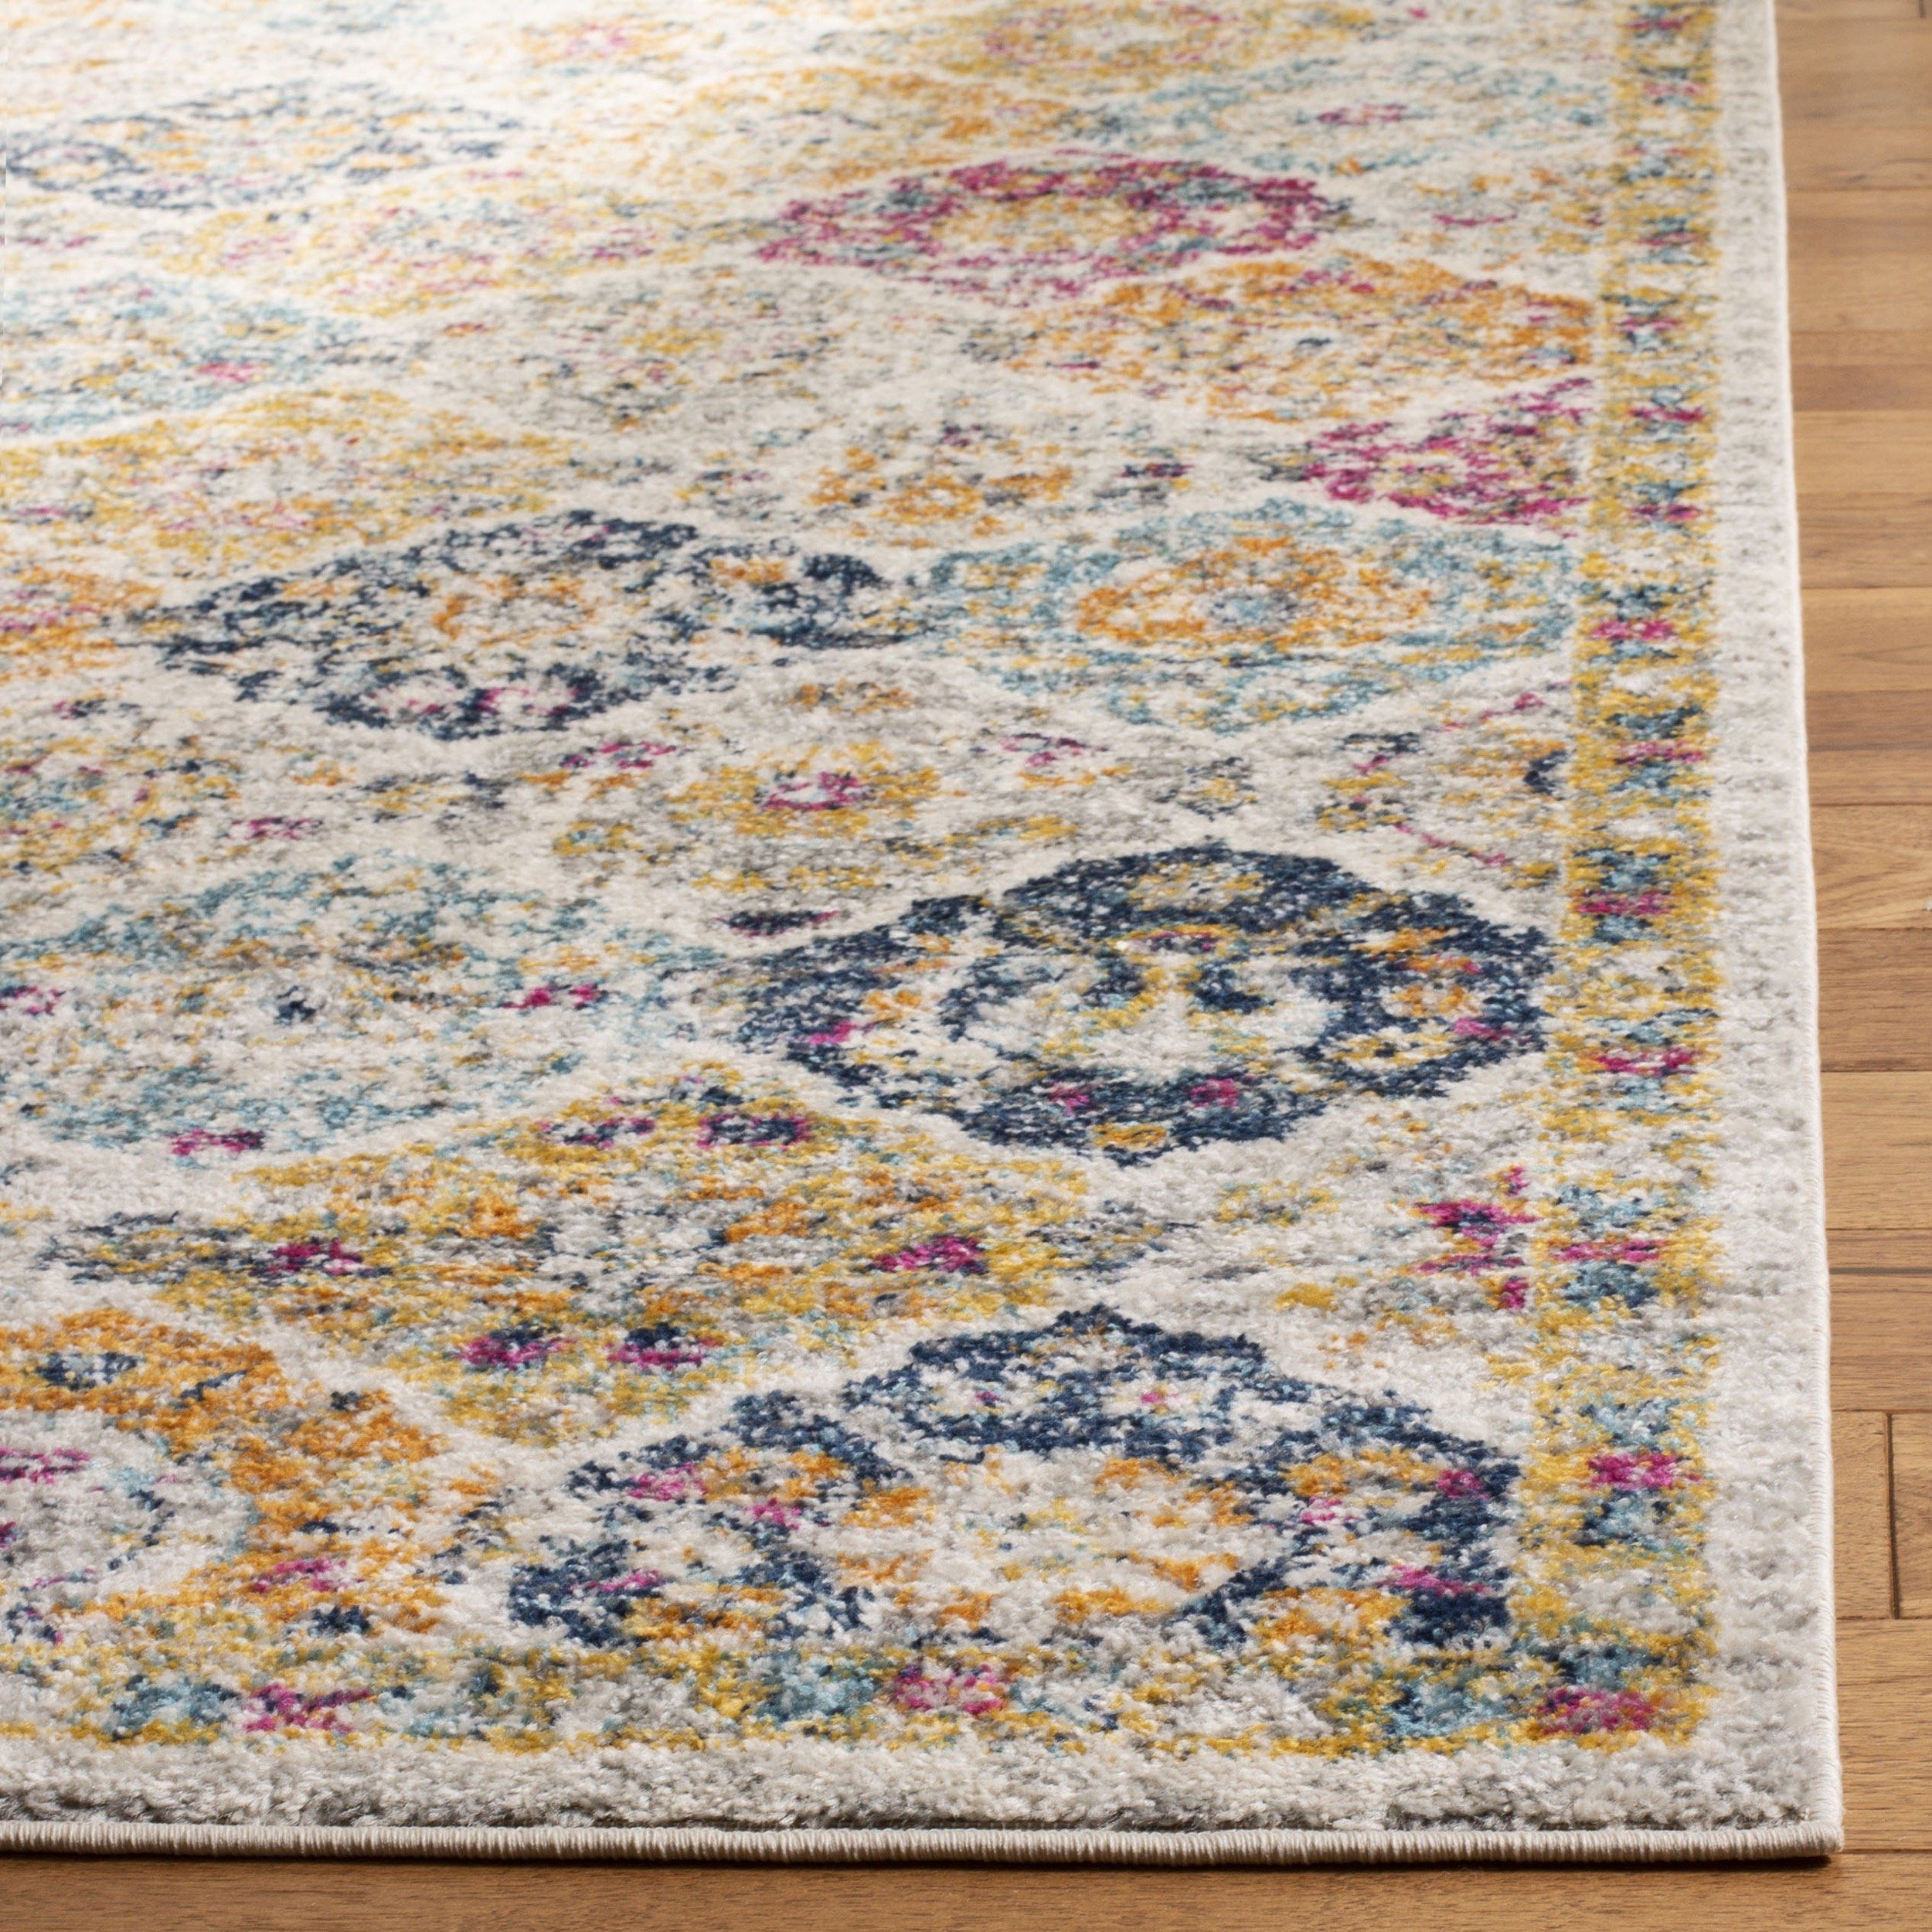 7c871bd6458 Safavieh Madison Collection MAD611B Cream and Multicolored Bohemian Chic  Distressed Square Area Rug 4 Square     Check this awesome product by going  to the ...